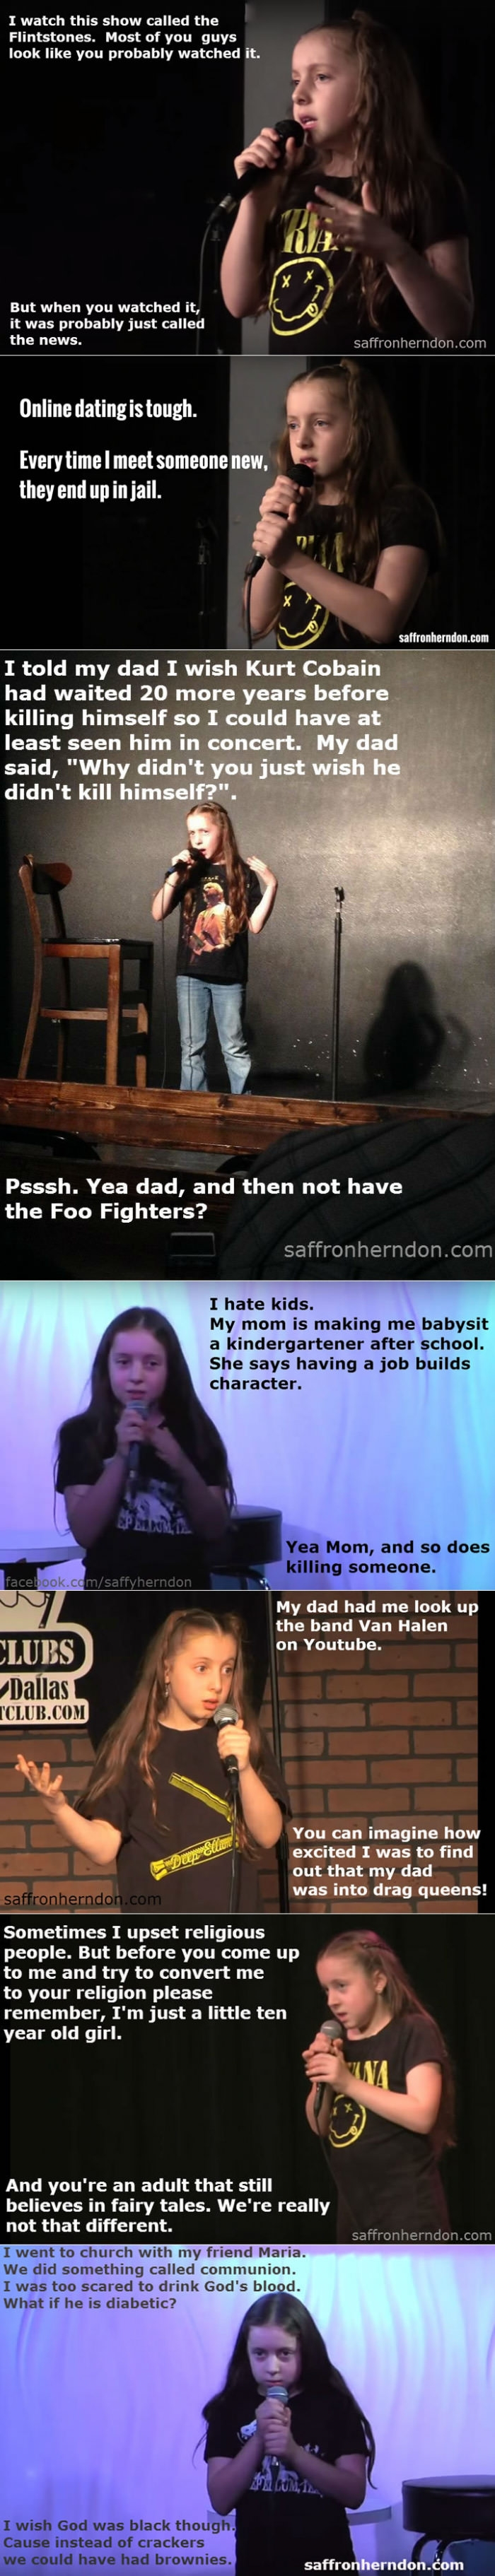 10 year old comedian girl